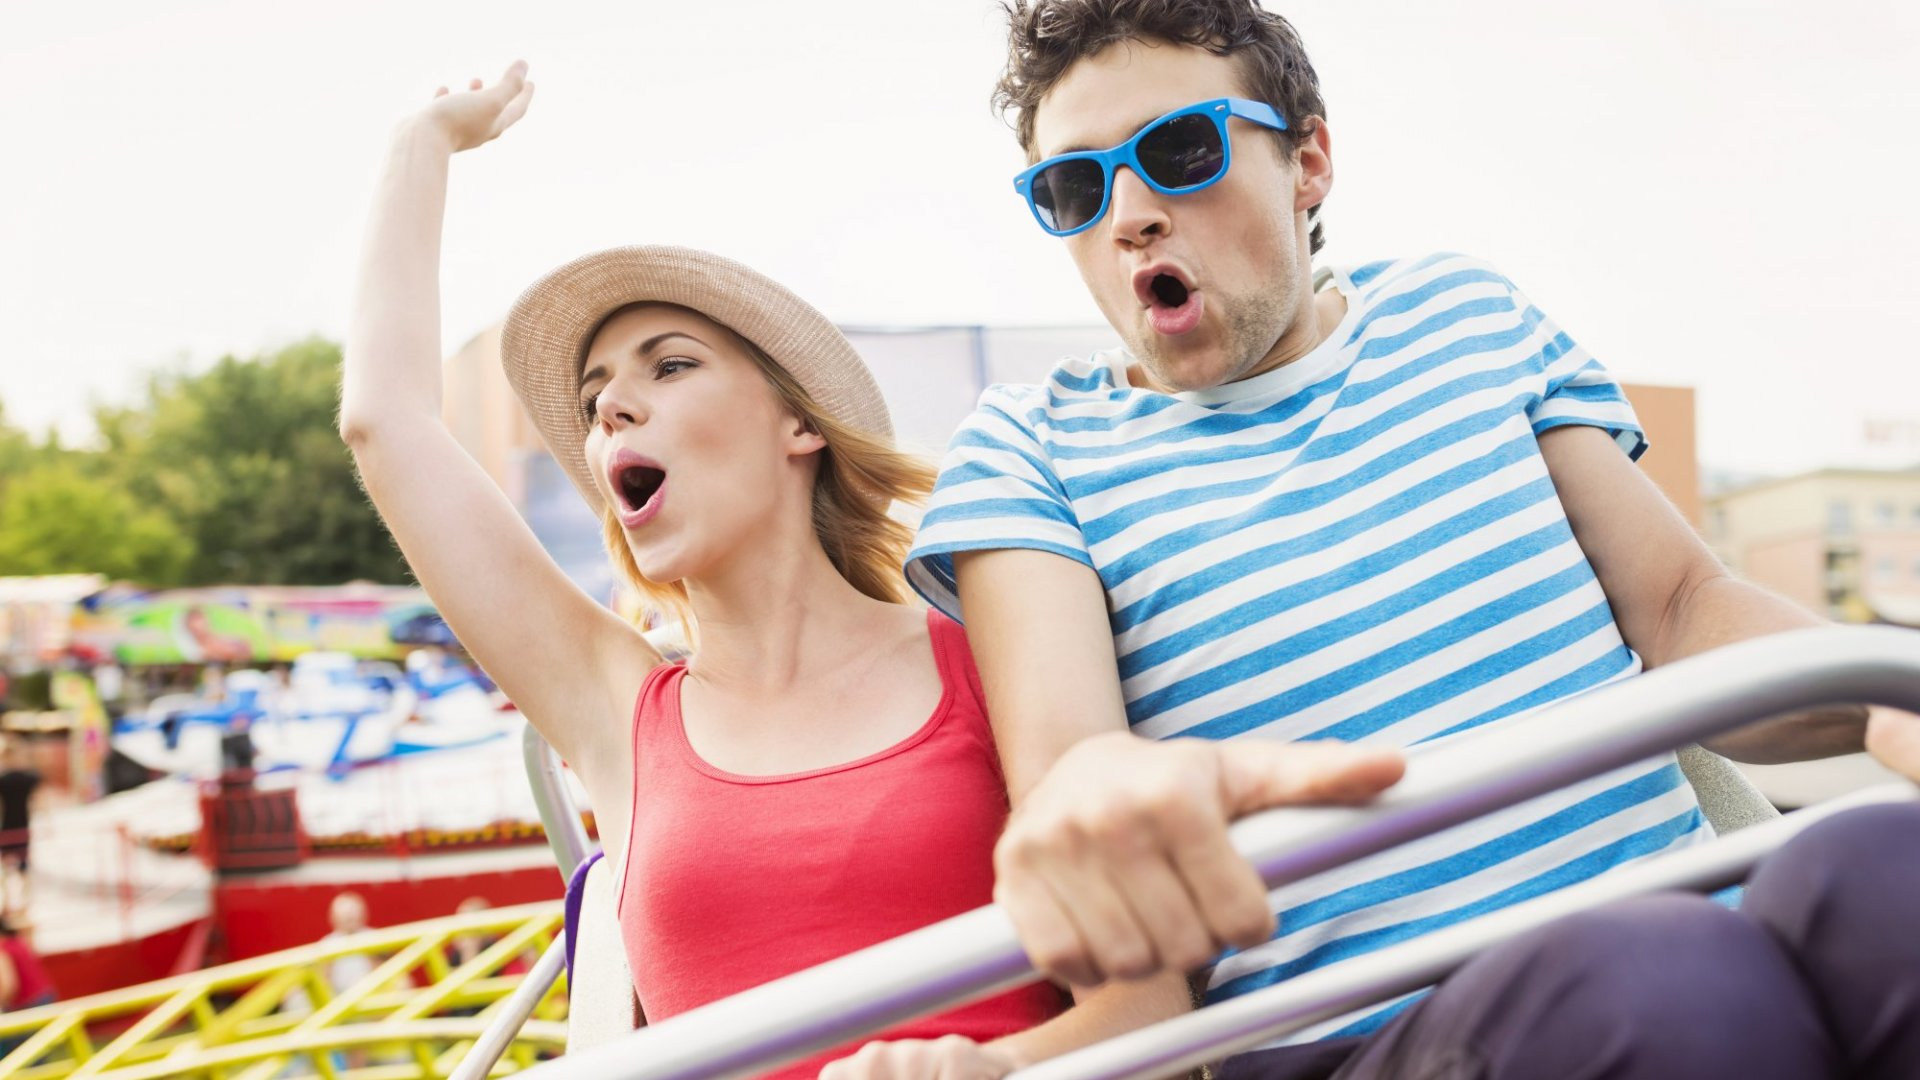 3 Reasons Business Is Like A Rollercoaster